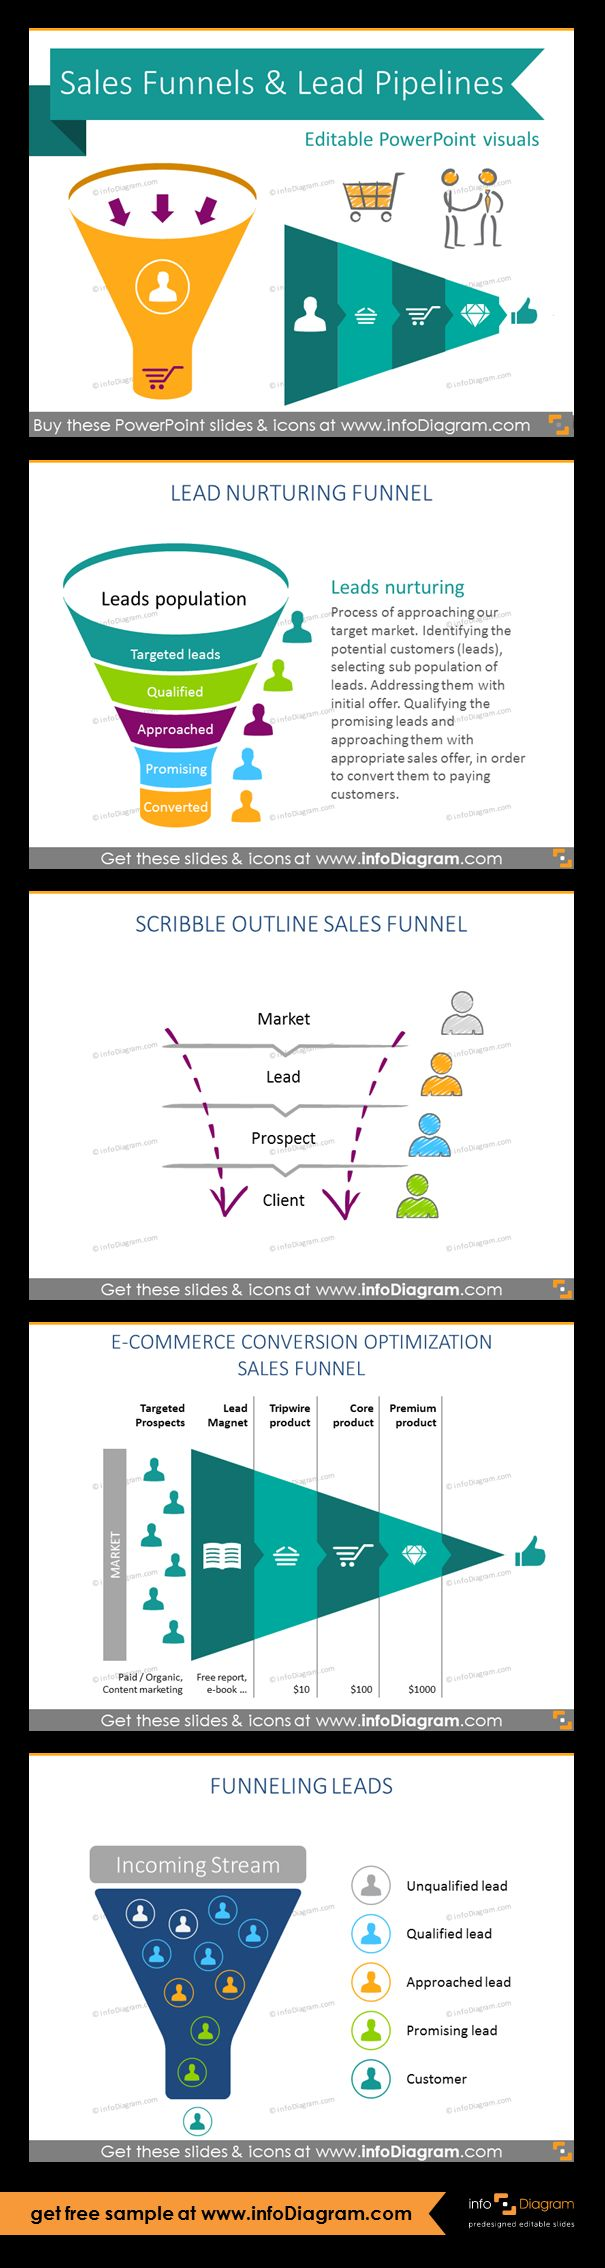 Predesigned Infographics shapes for showing various funnel processes on a slide. Suitable especially for marketing, sales and business development presentations. Usage sales funnel examples: lead nurturing funnel, scribble outline sales funnel, e-commerce conversion optimization sales funnel, funneling leads. Fully editable style, size and colors.